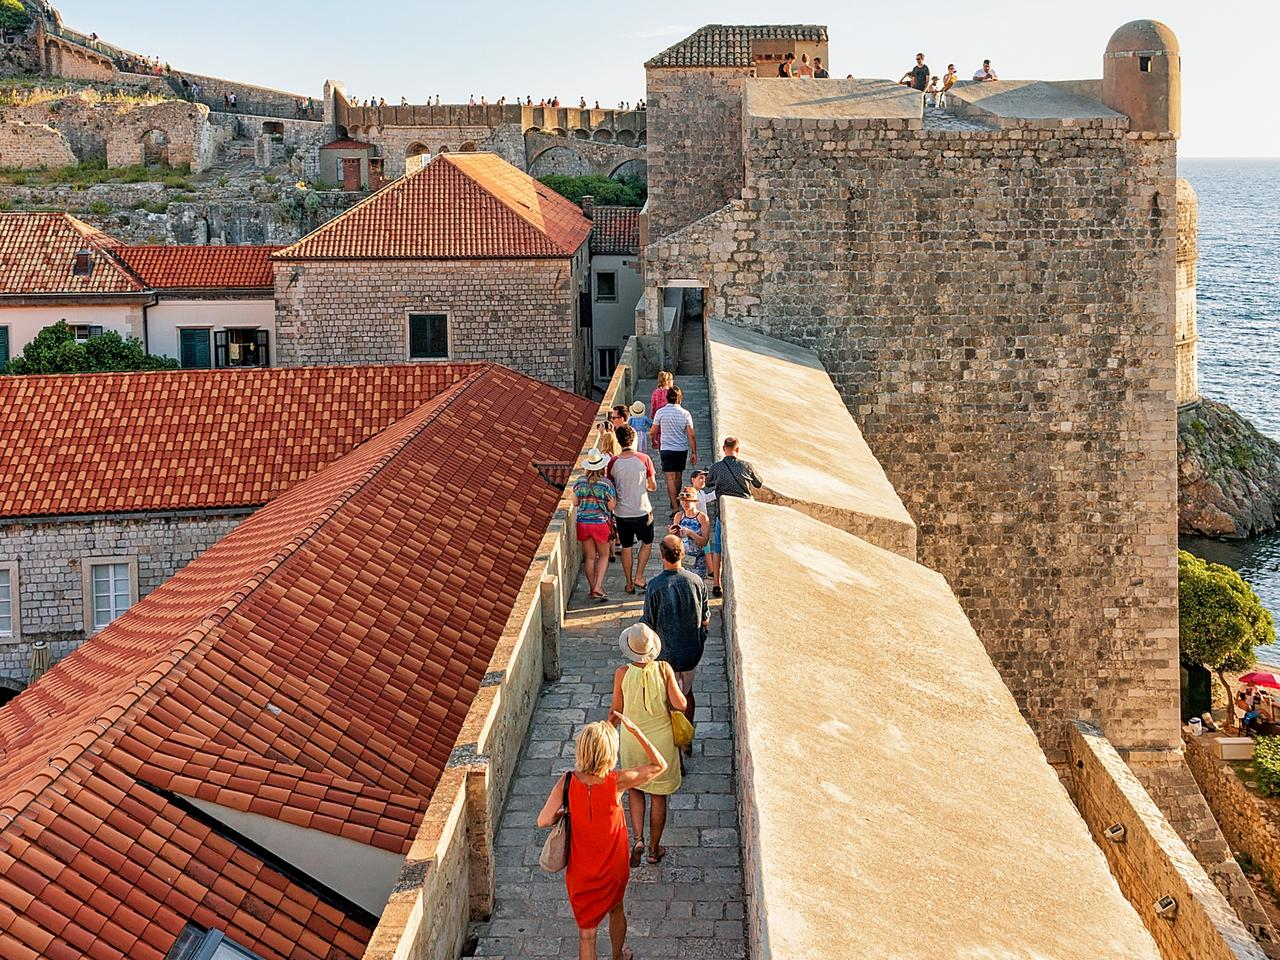 People in Old City Walls in Dubrovnik Croatia